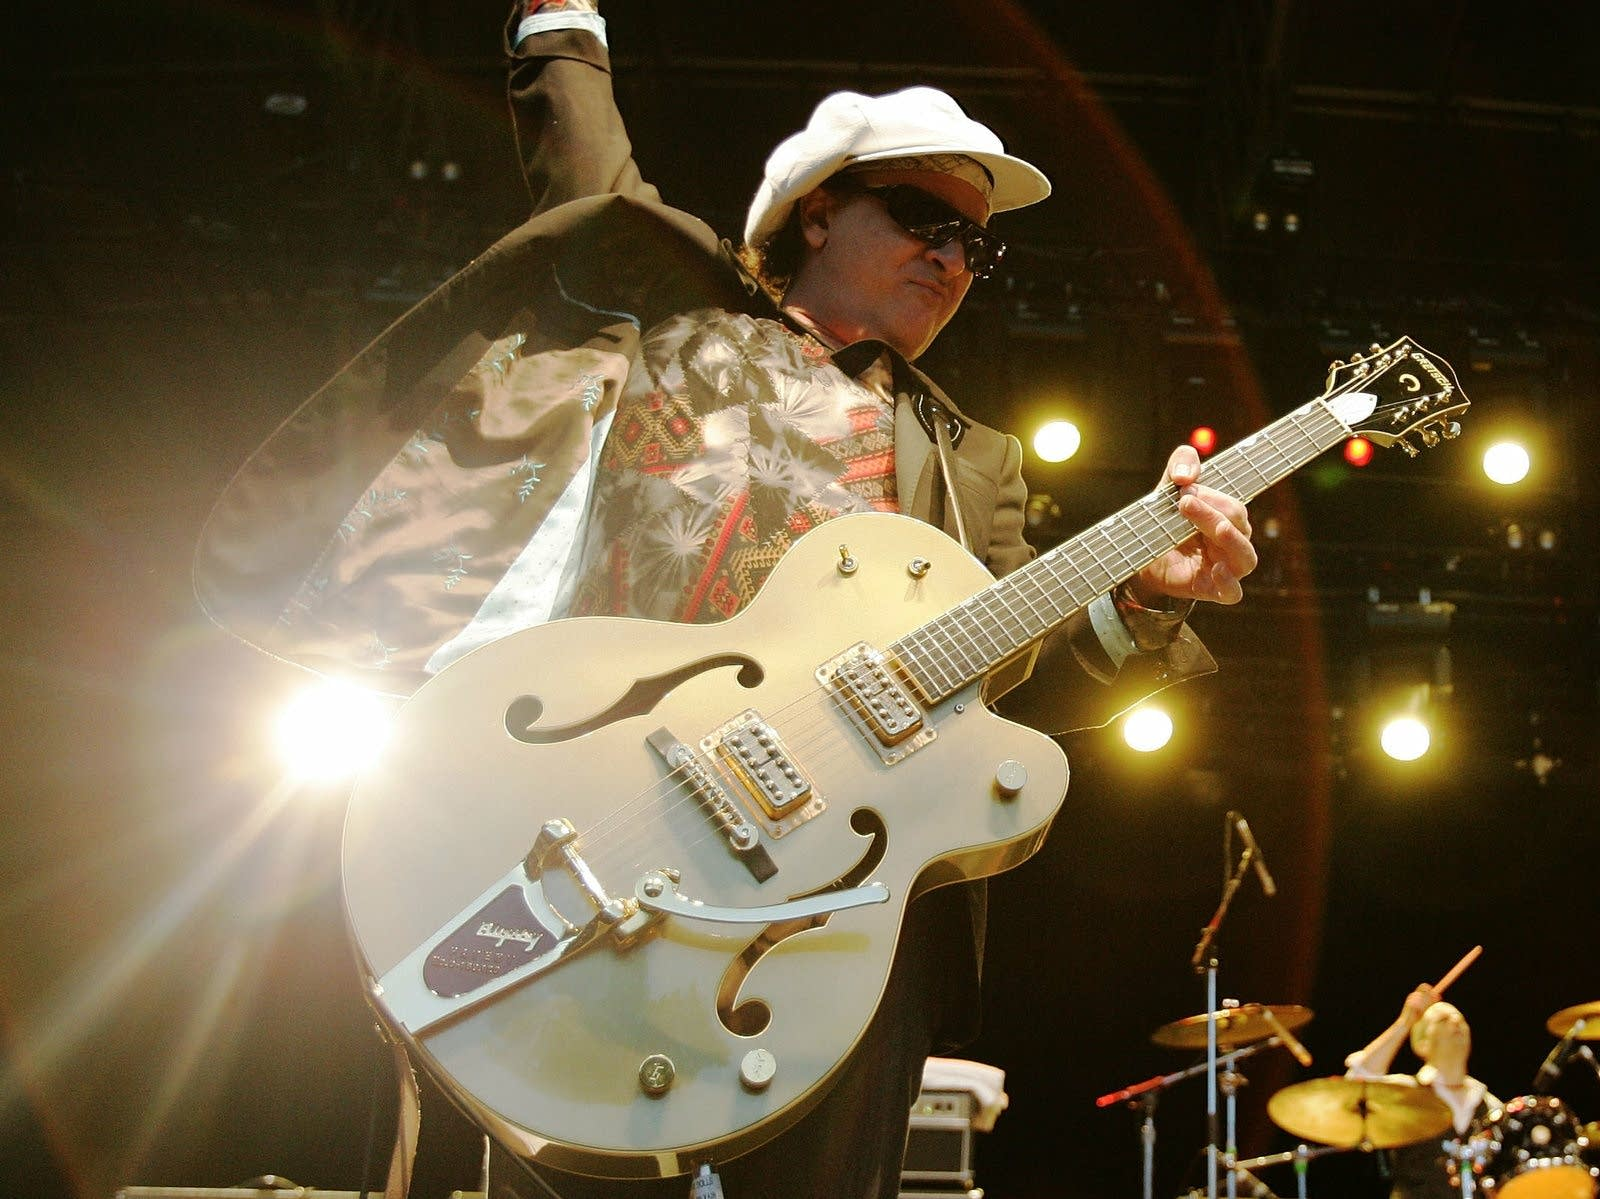 Sylvain Sylvain of the New York Dolls performs onstage in 2007